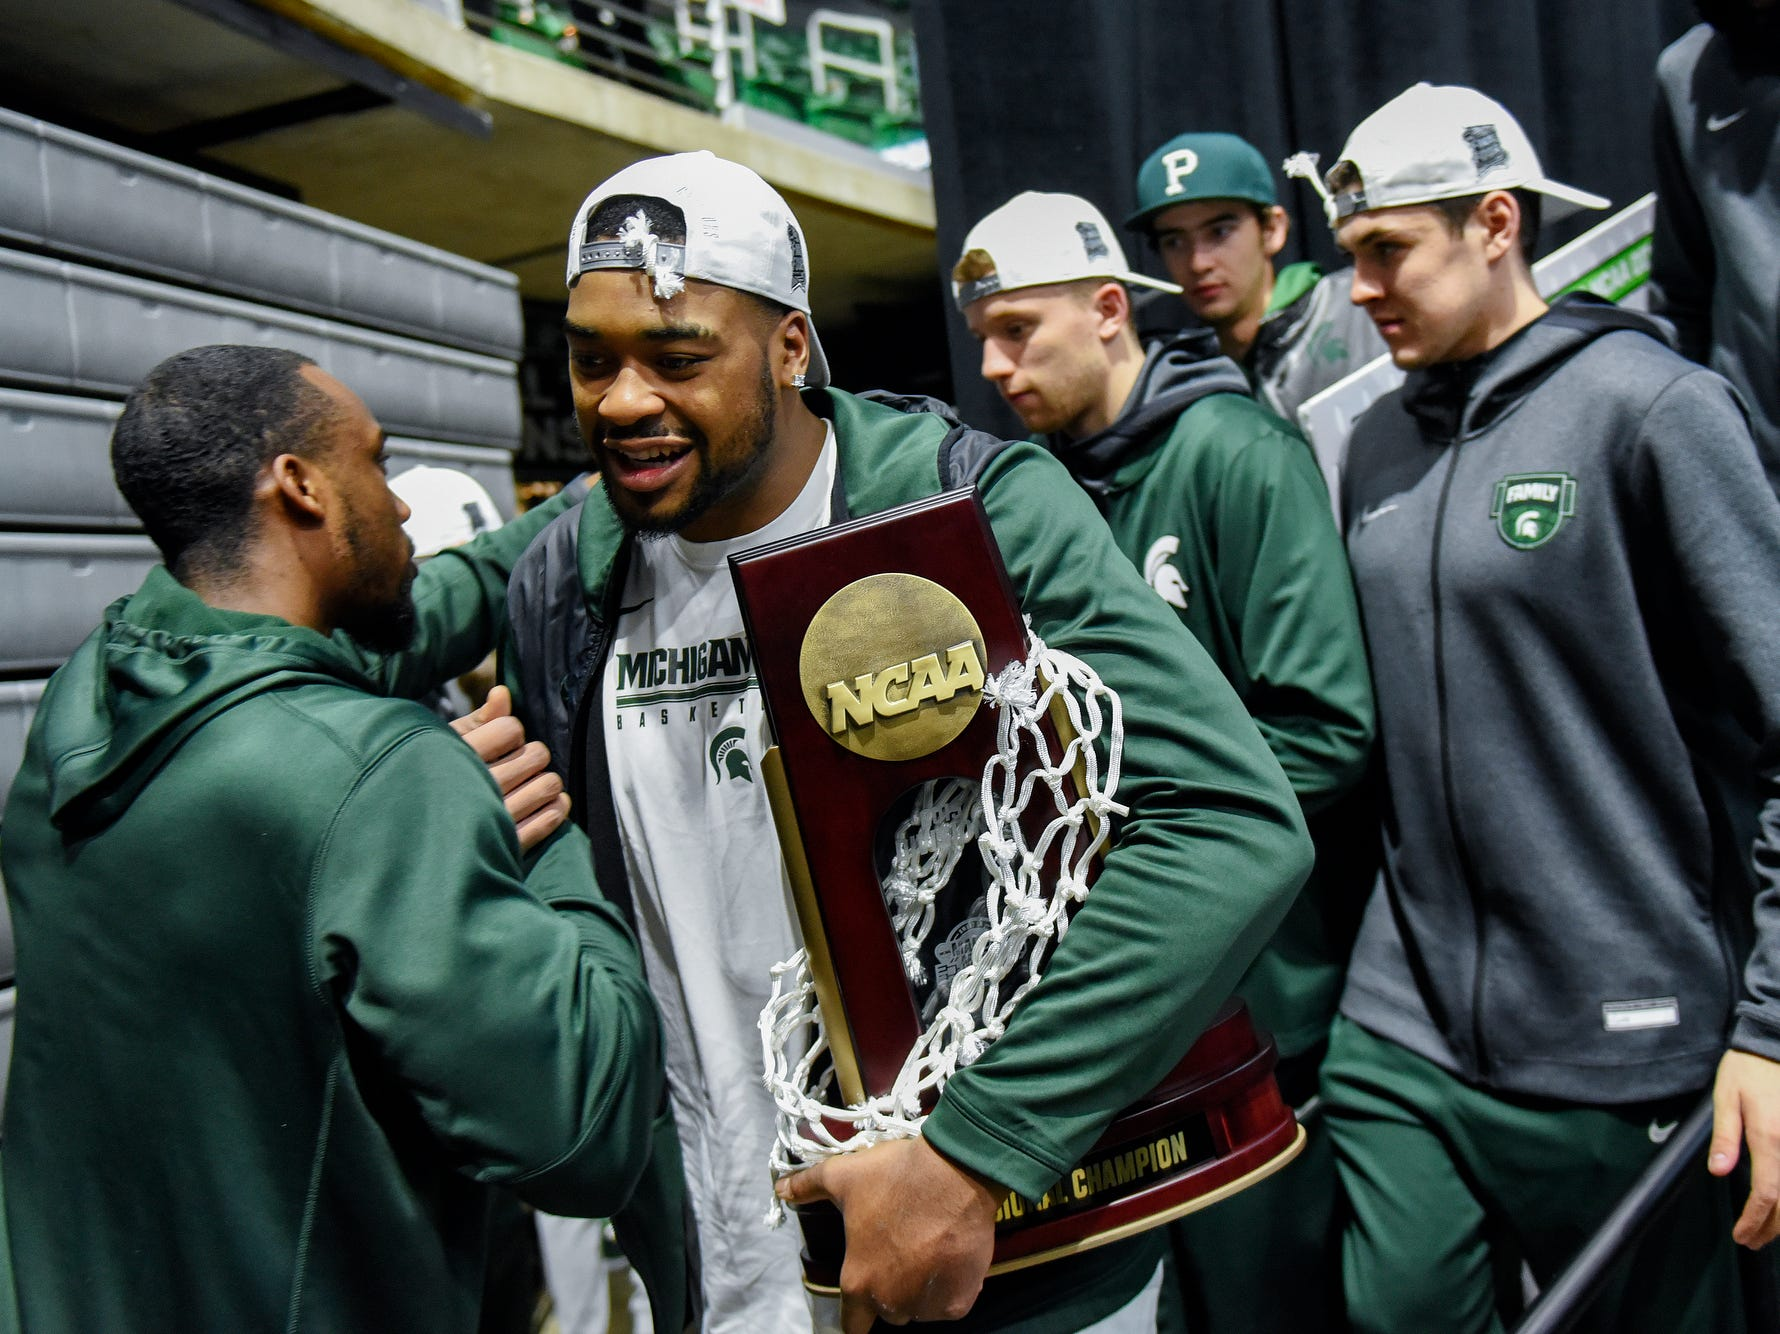 Michigan State's Nick Ward holds the East Regional Championship trophy as he and the team leave the stage during a rally after MSU's victory over Duke on Sunday, March 31, 2019, at the Breslin Center in East Lansing. The Spartans beat Duke 68-67 to reach the Final Four.